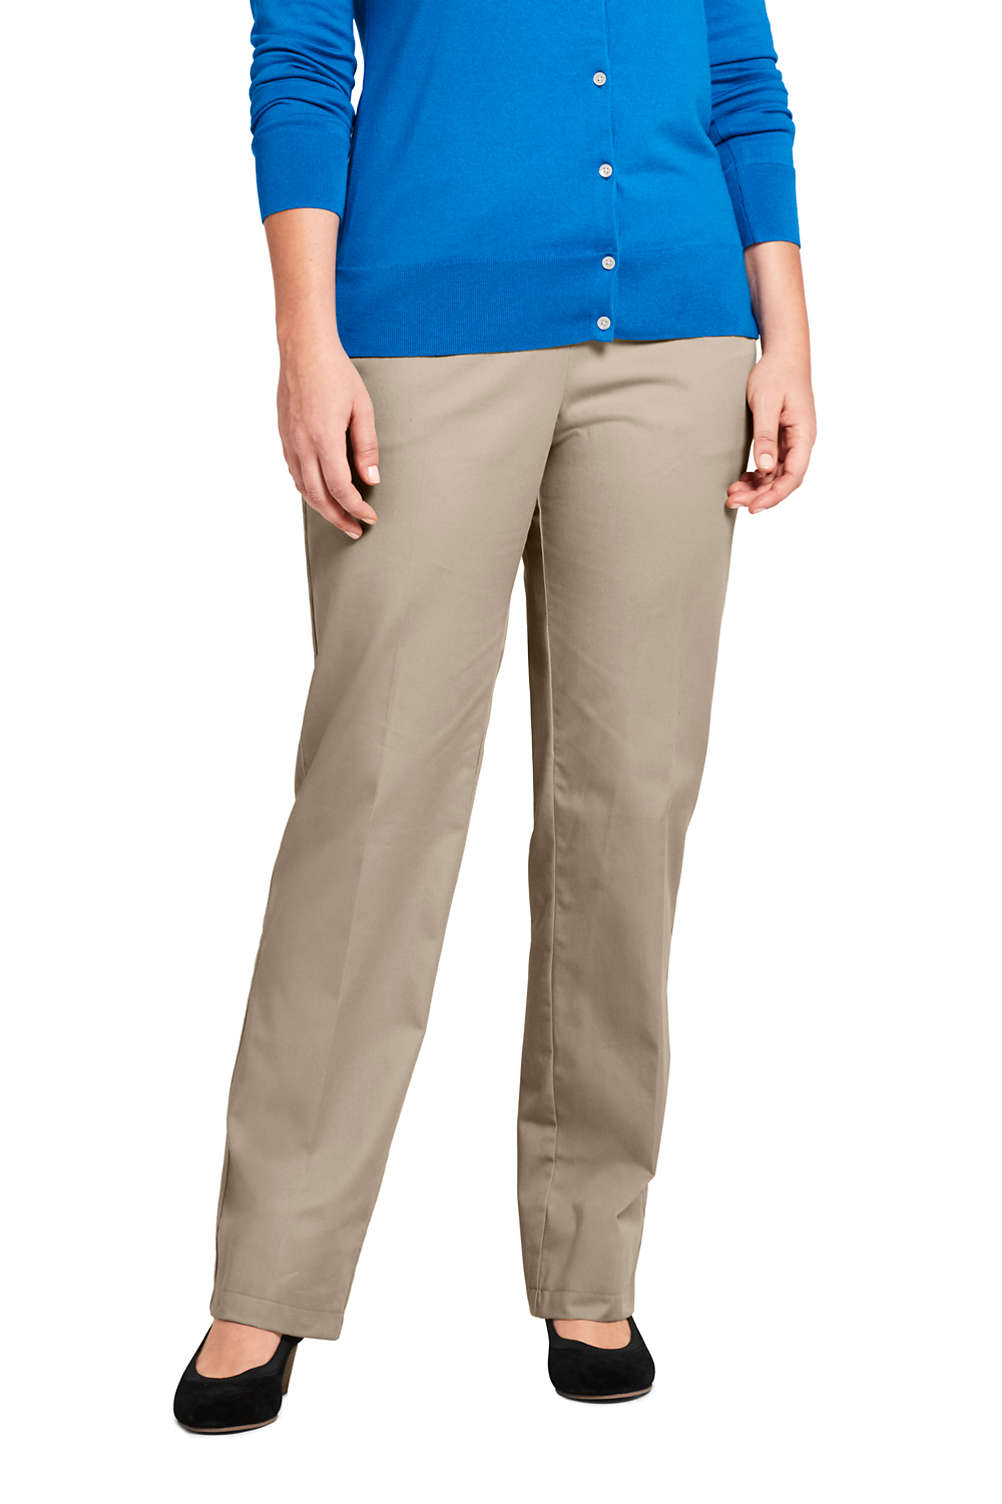 Women\'s Plus Size 7 Day Elastic Waist Pull On Pants from Lands\' End